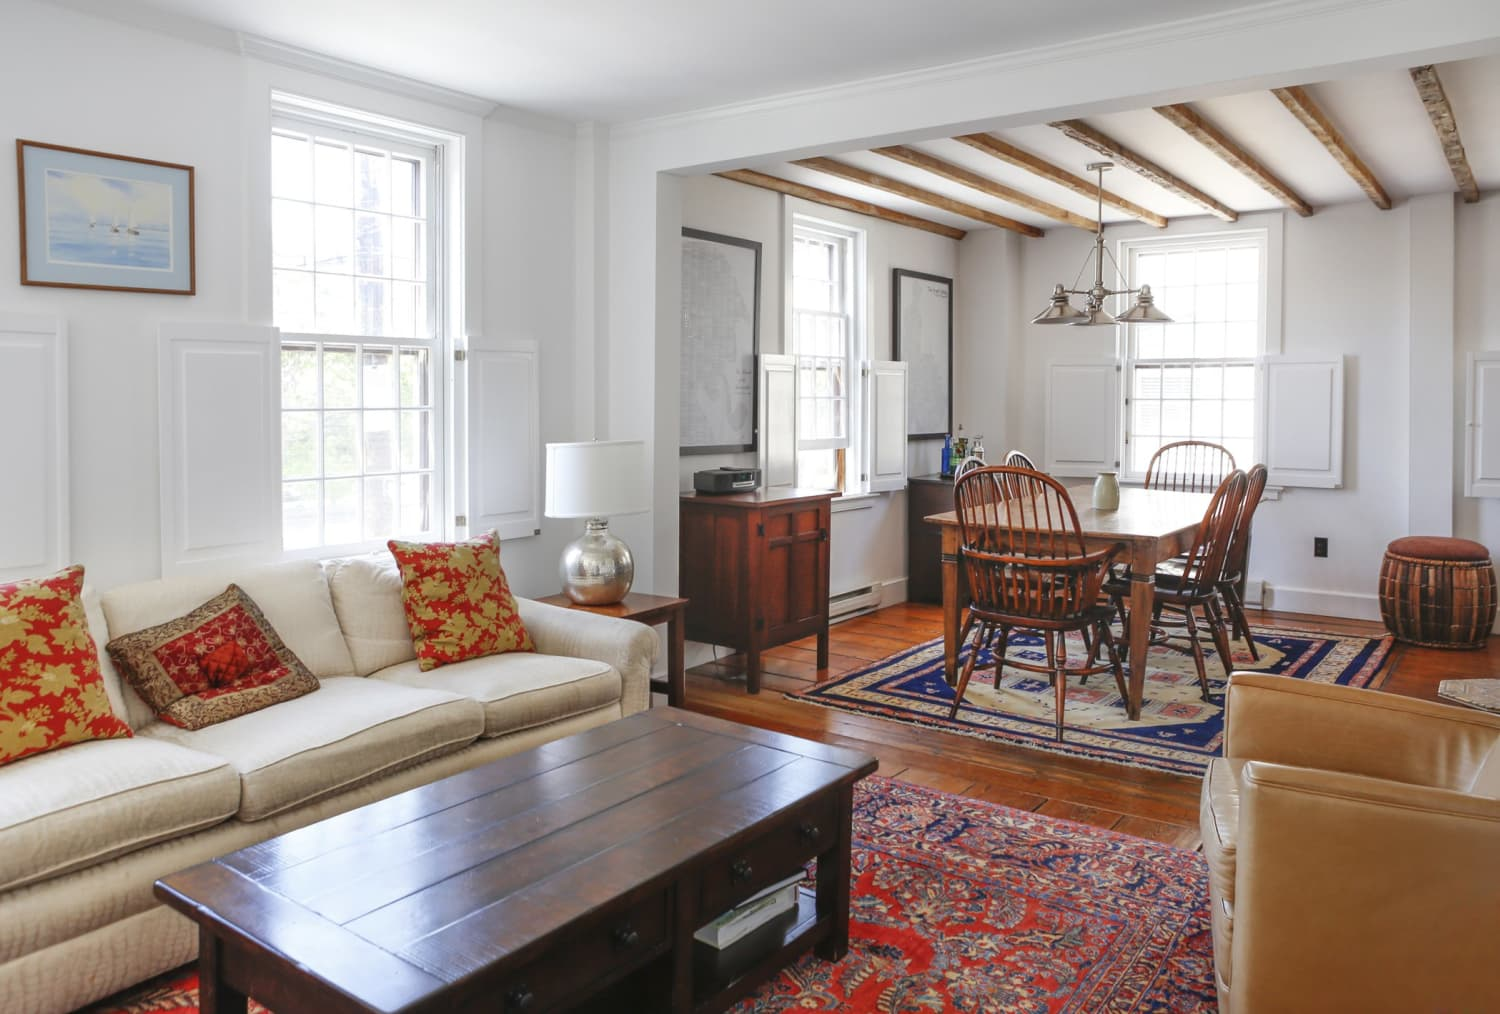 Houzz Just Launched Its Massive Fourth of July Preview Sale. Here's What We're Taking Home